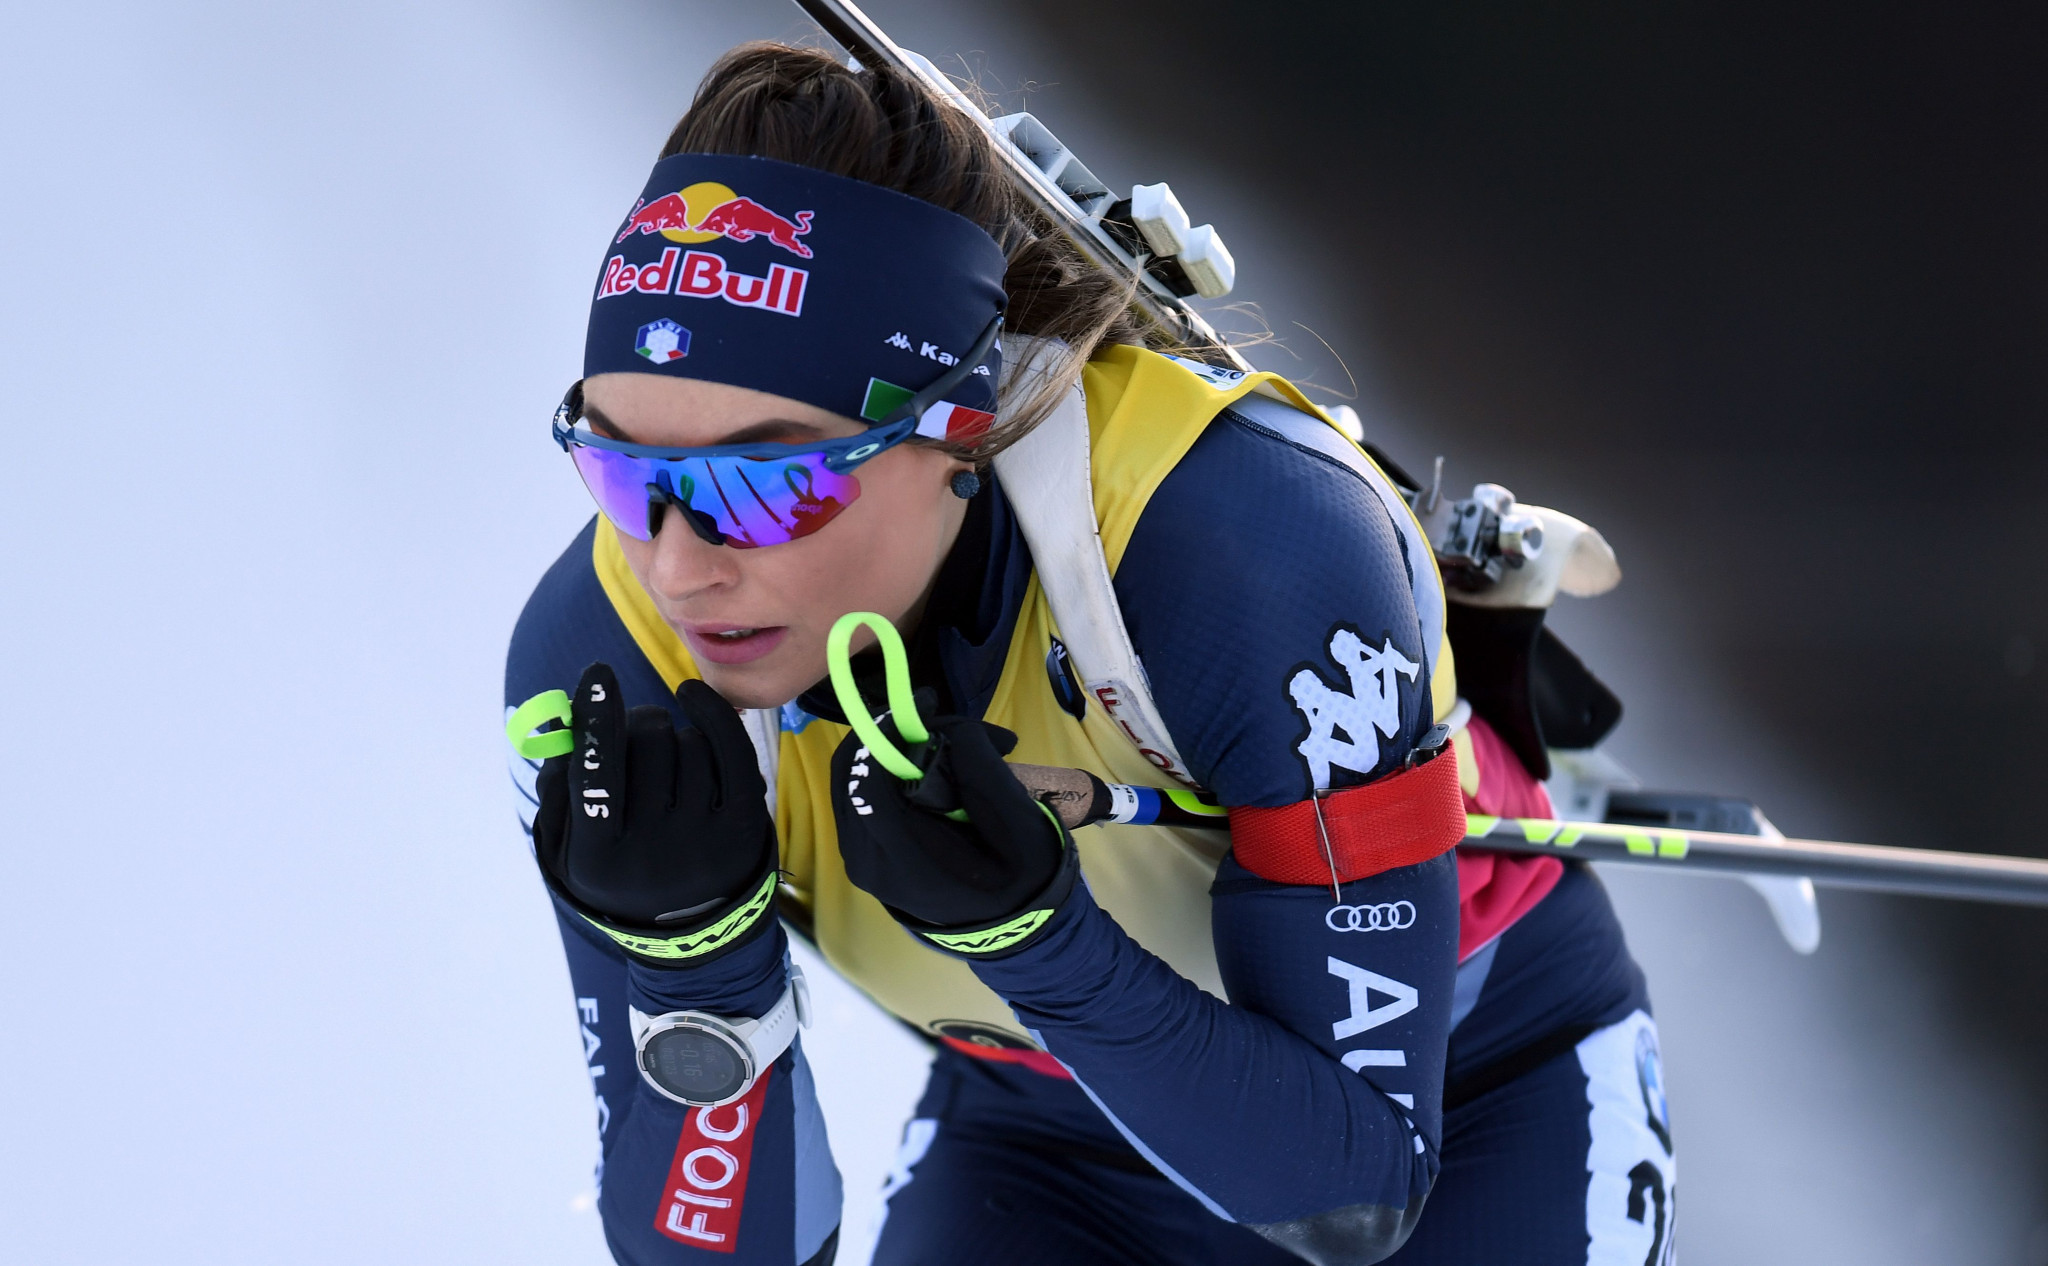 Dorothea Wierer of Italy moved down to second in the women's IBU World Cup standings ©Getty Images